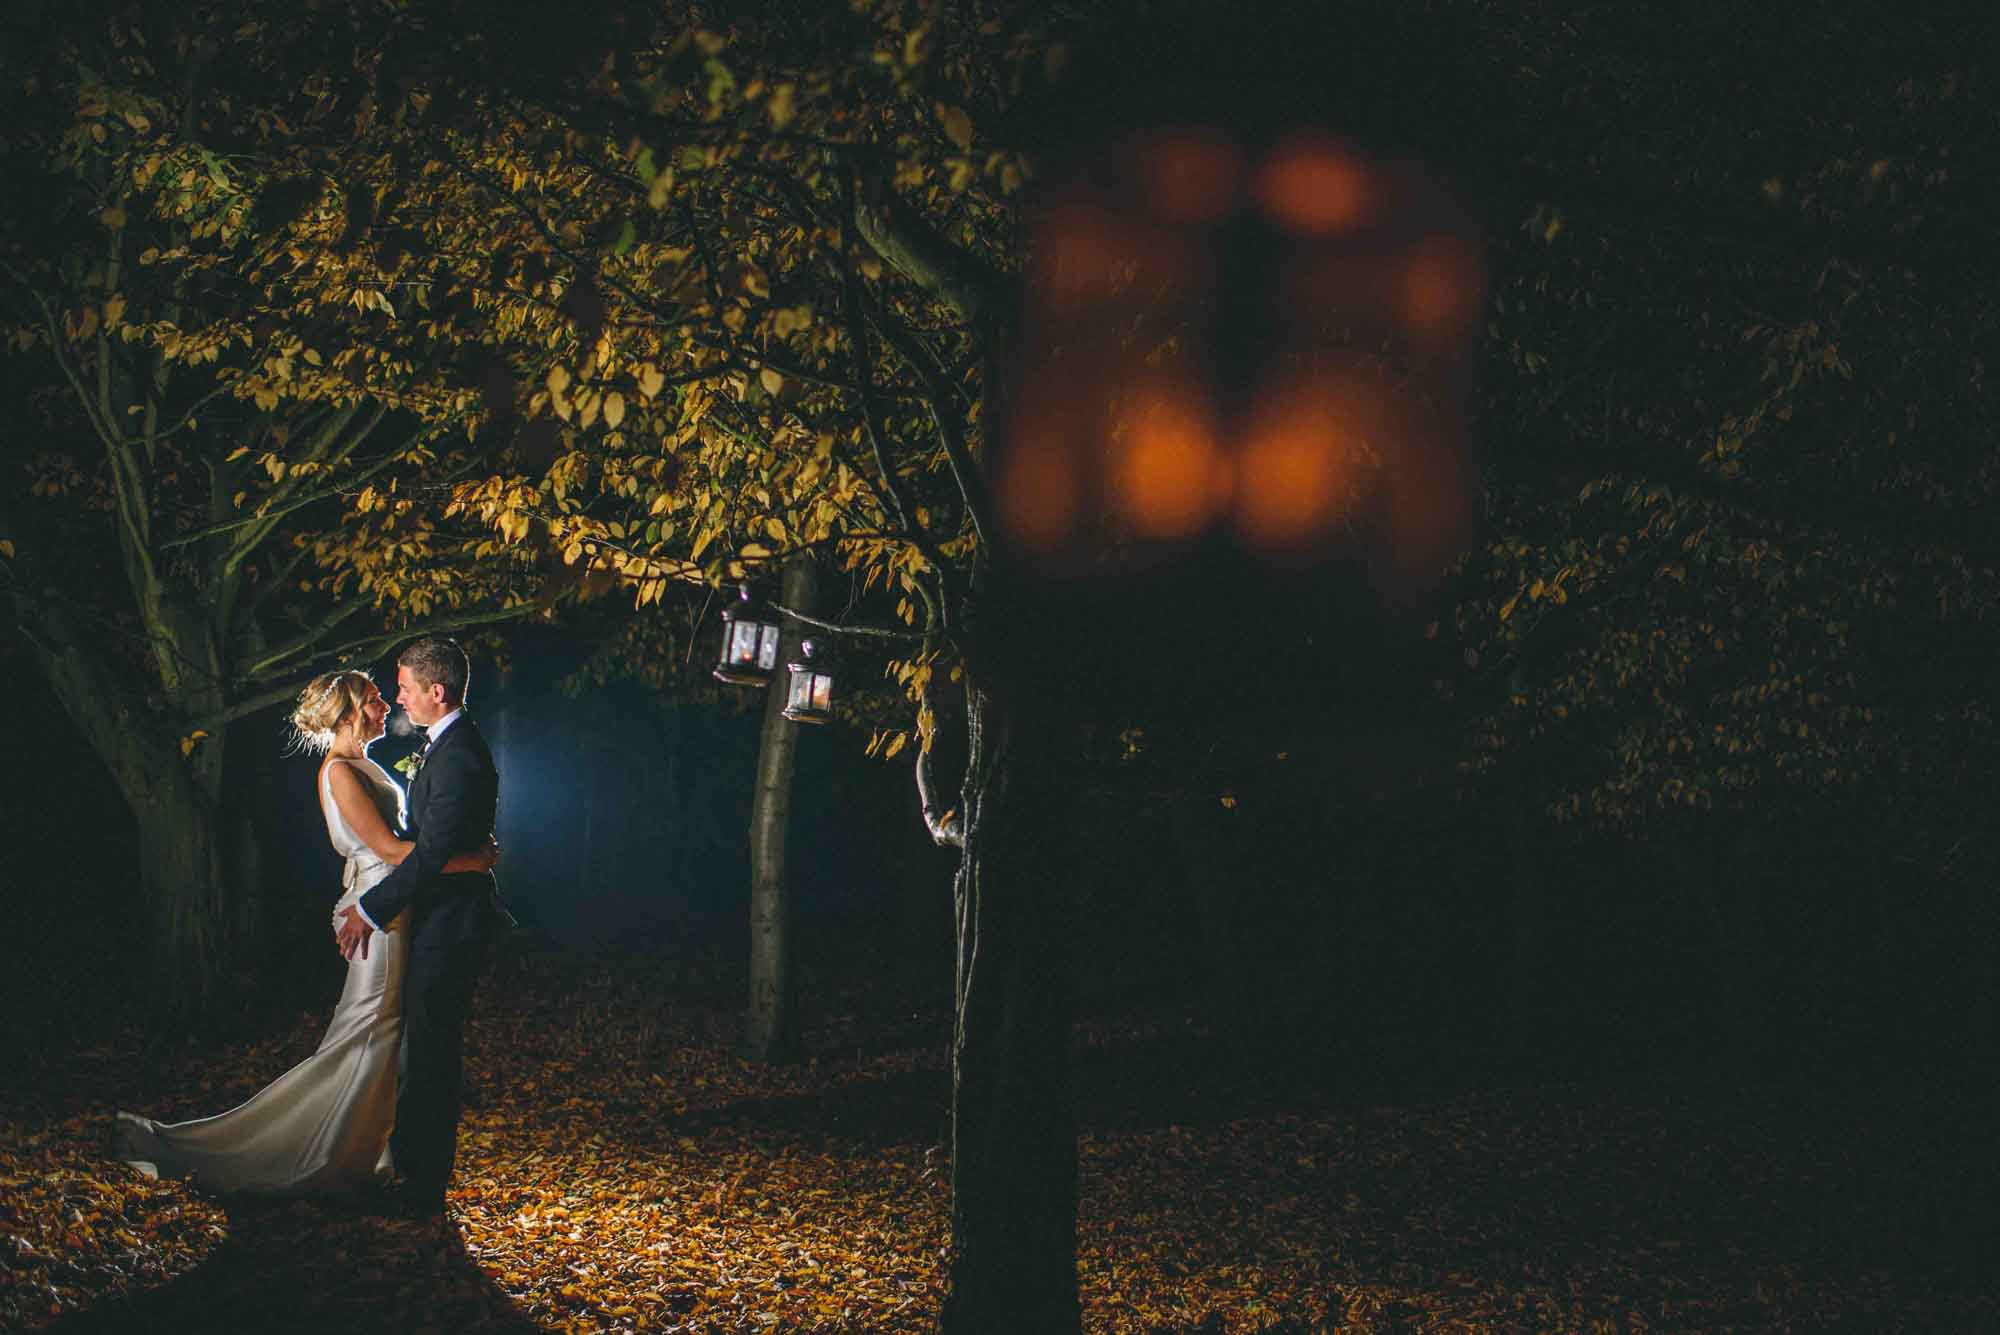 Winter Wedding at Cripps Barn Wedding Photo